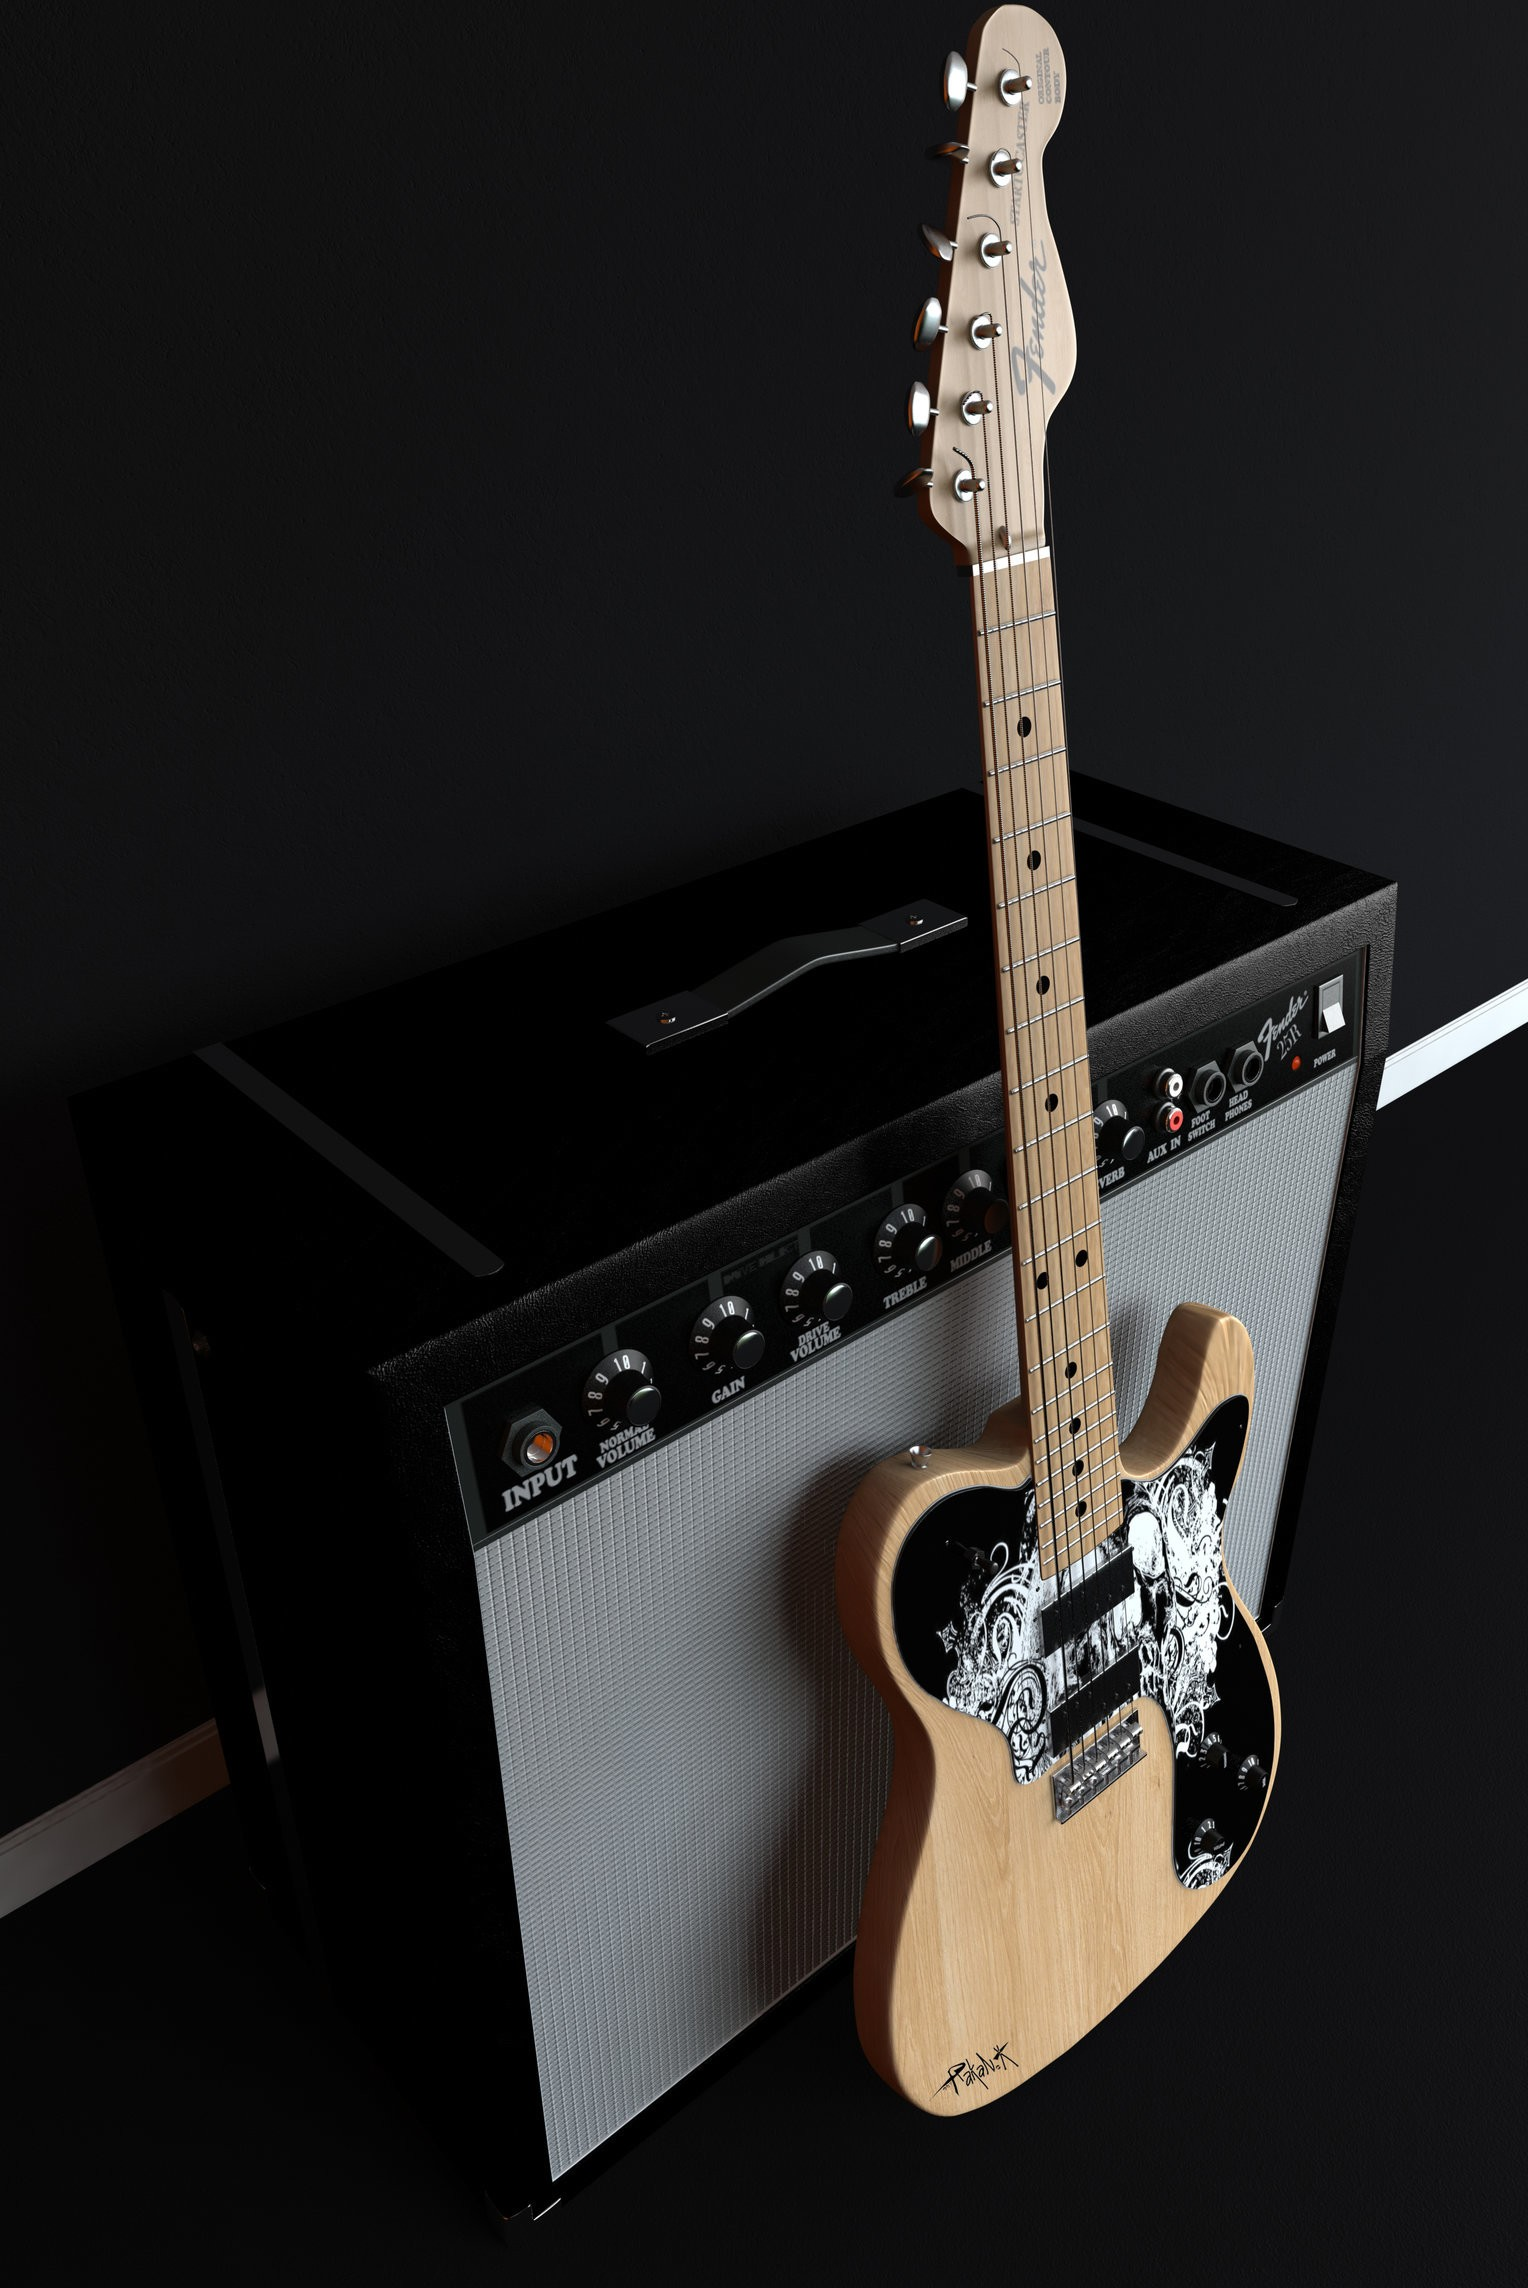 Guitar Amp Iphone Wallpaper Kolpaper Awesome Free Hd Wallpapers